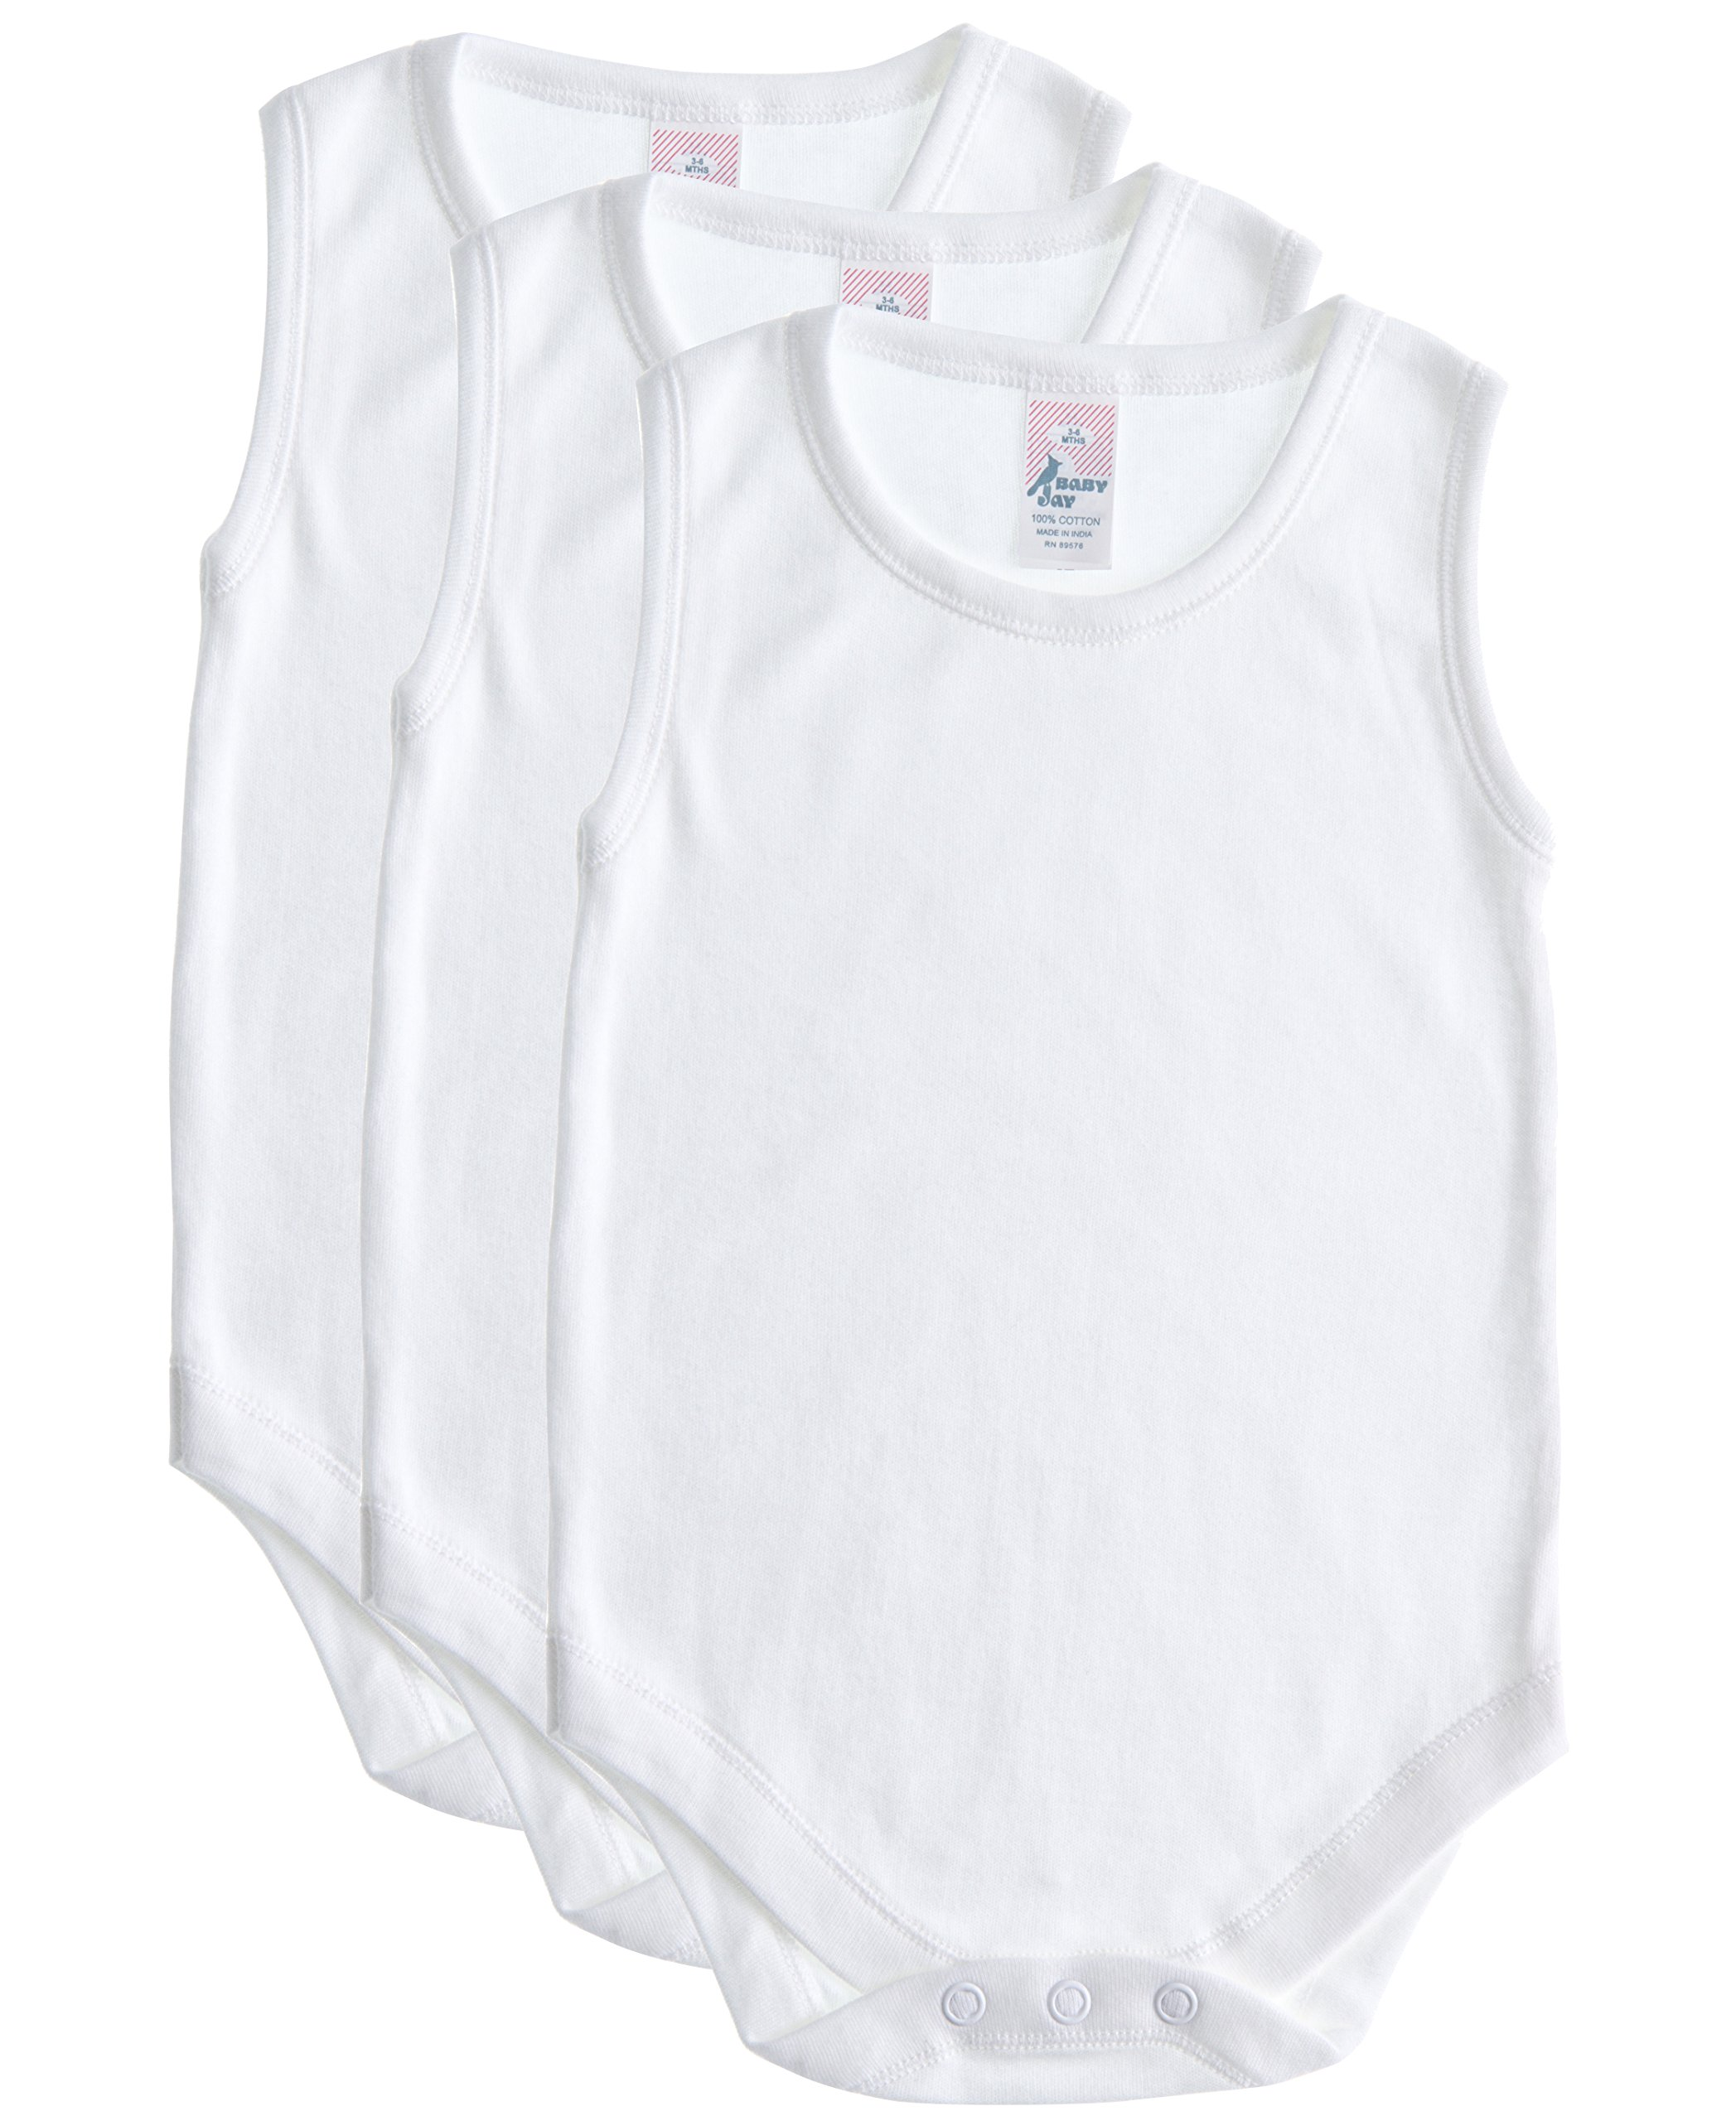 Soft Cotton Sleeveless Onesie Bodysuit, WSNR 18-24 3-Pack,White,18-24 Months (2T)